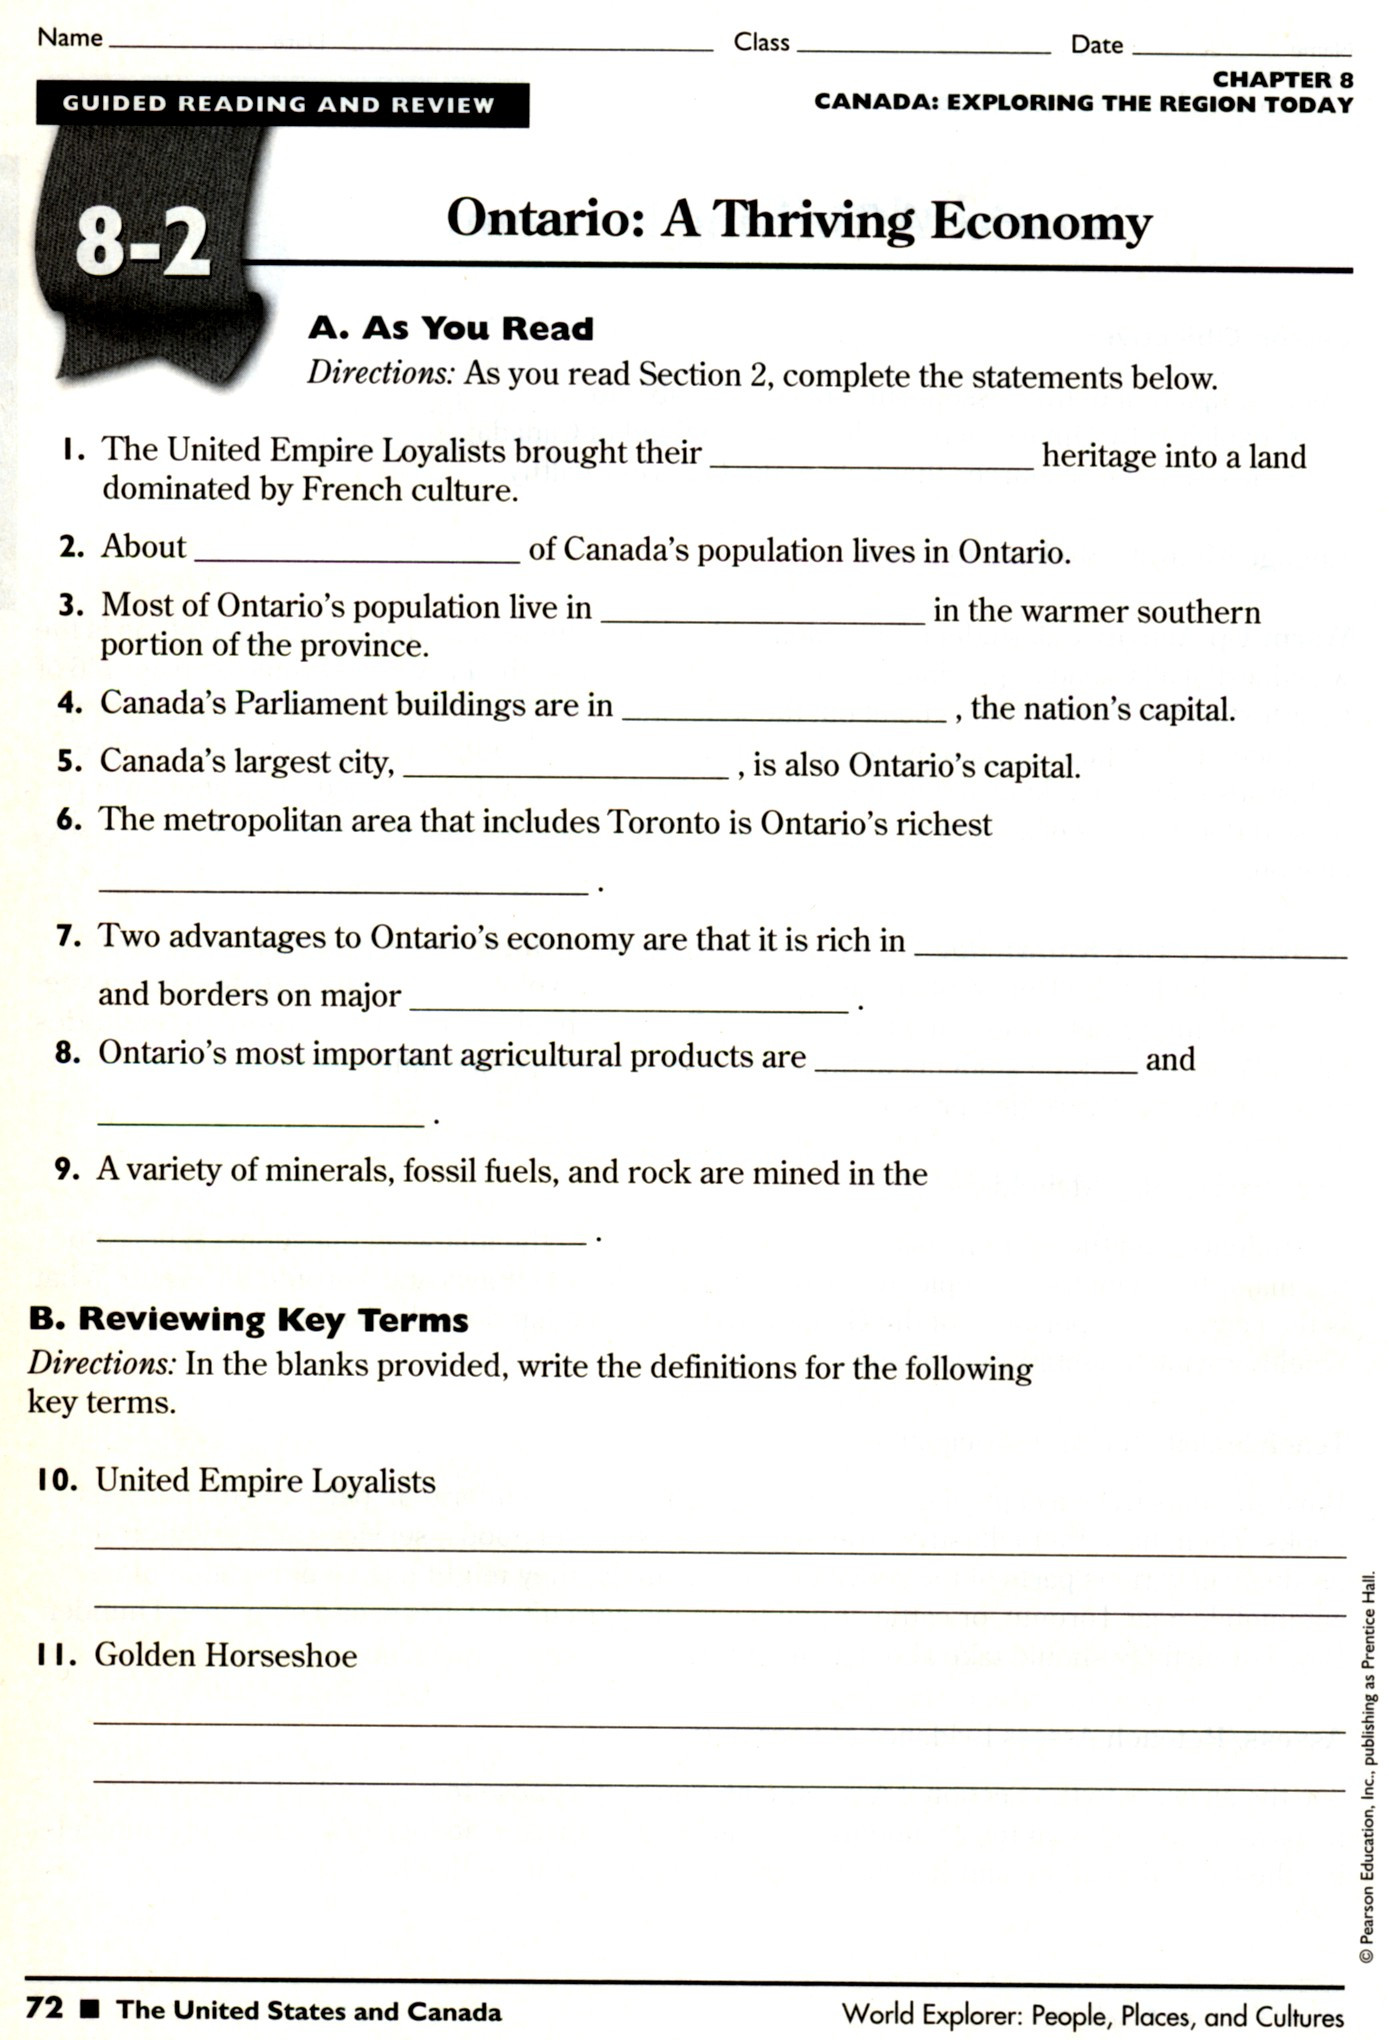 7th Grade social Studies Worksheets Physical Geography the United States and Canada Worksheet